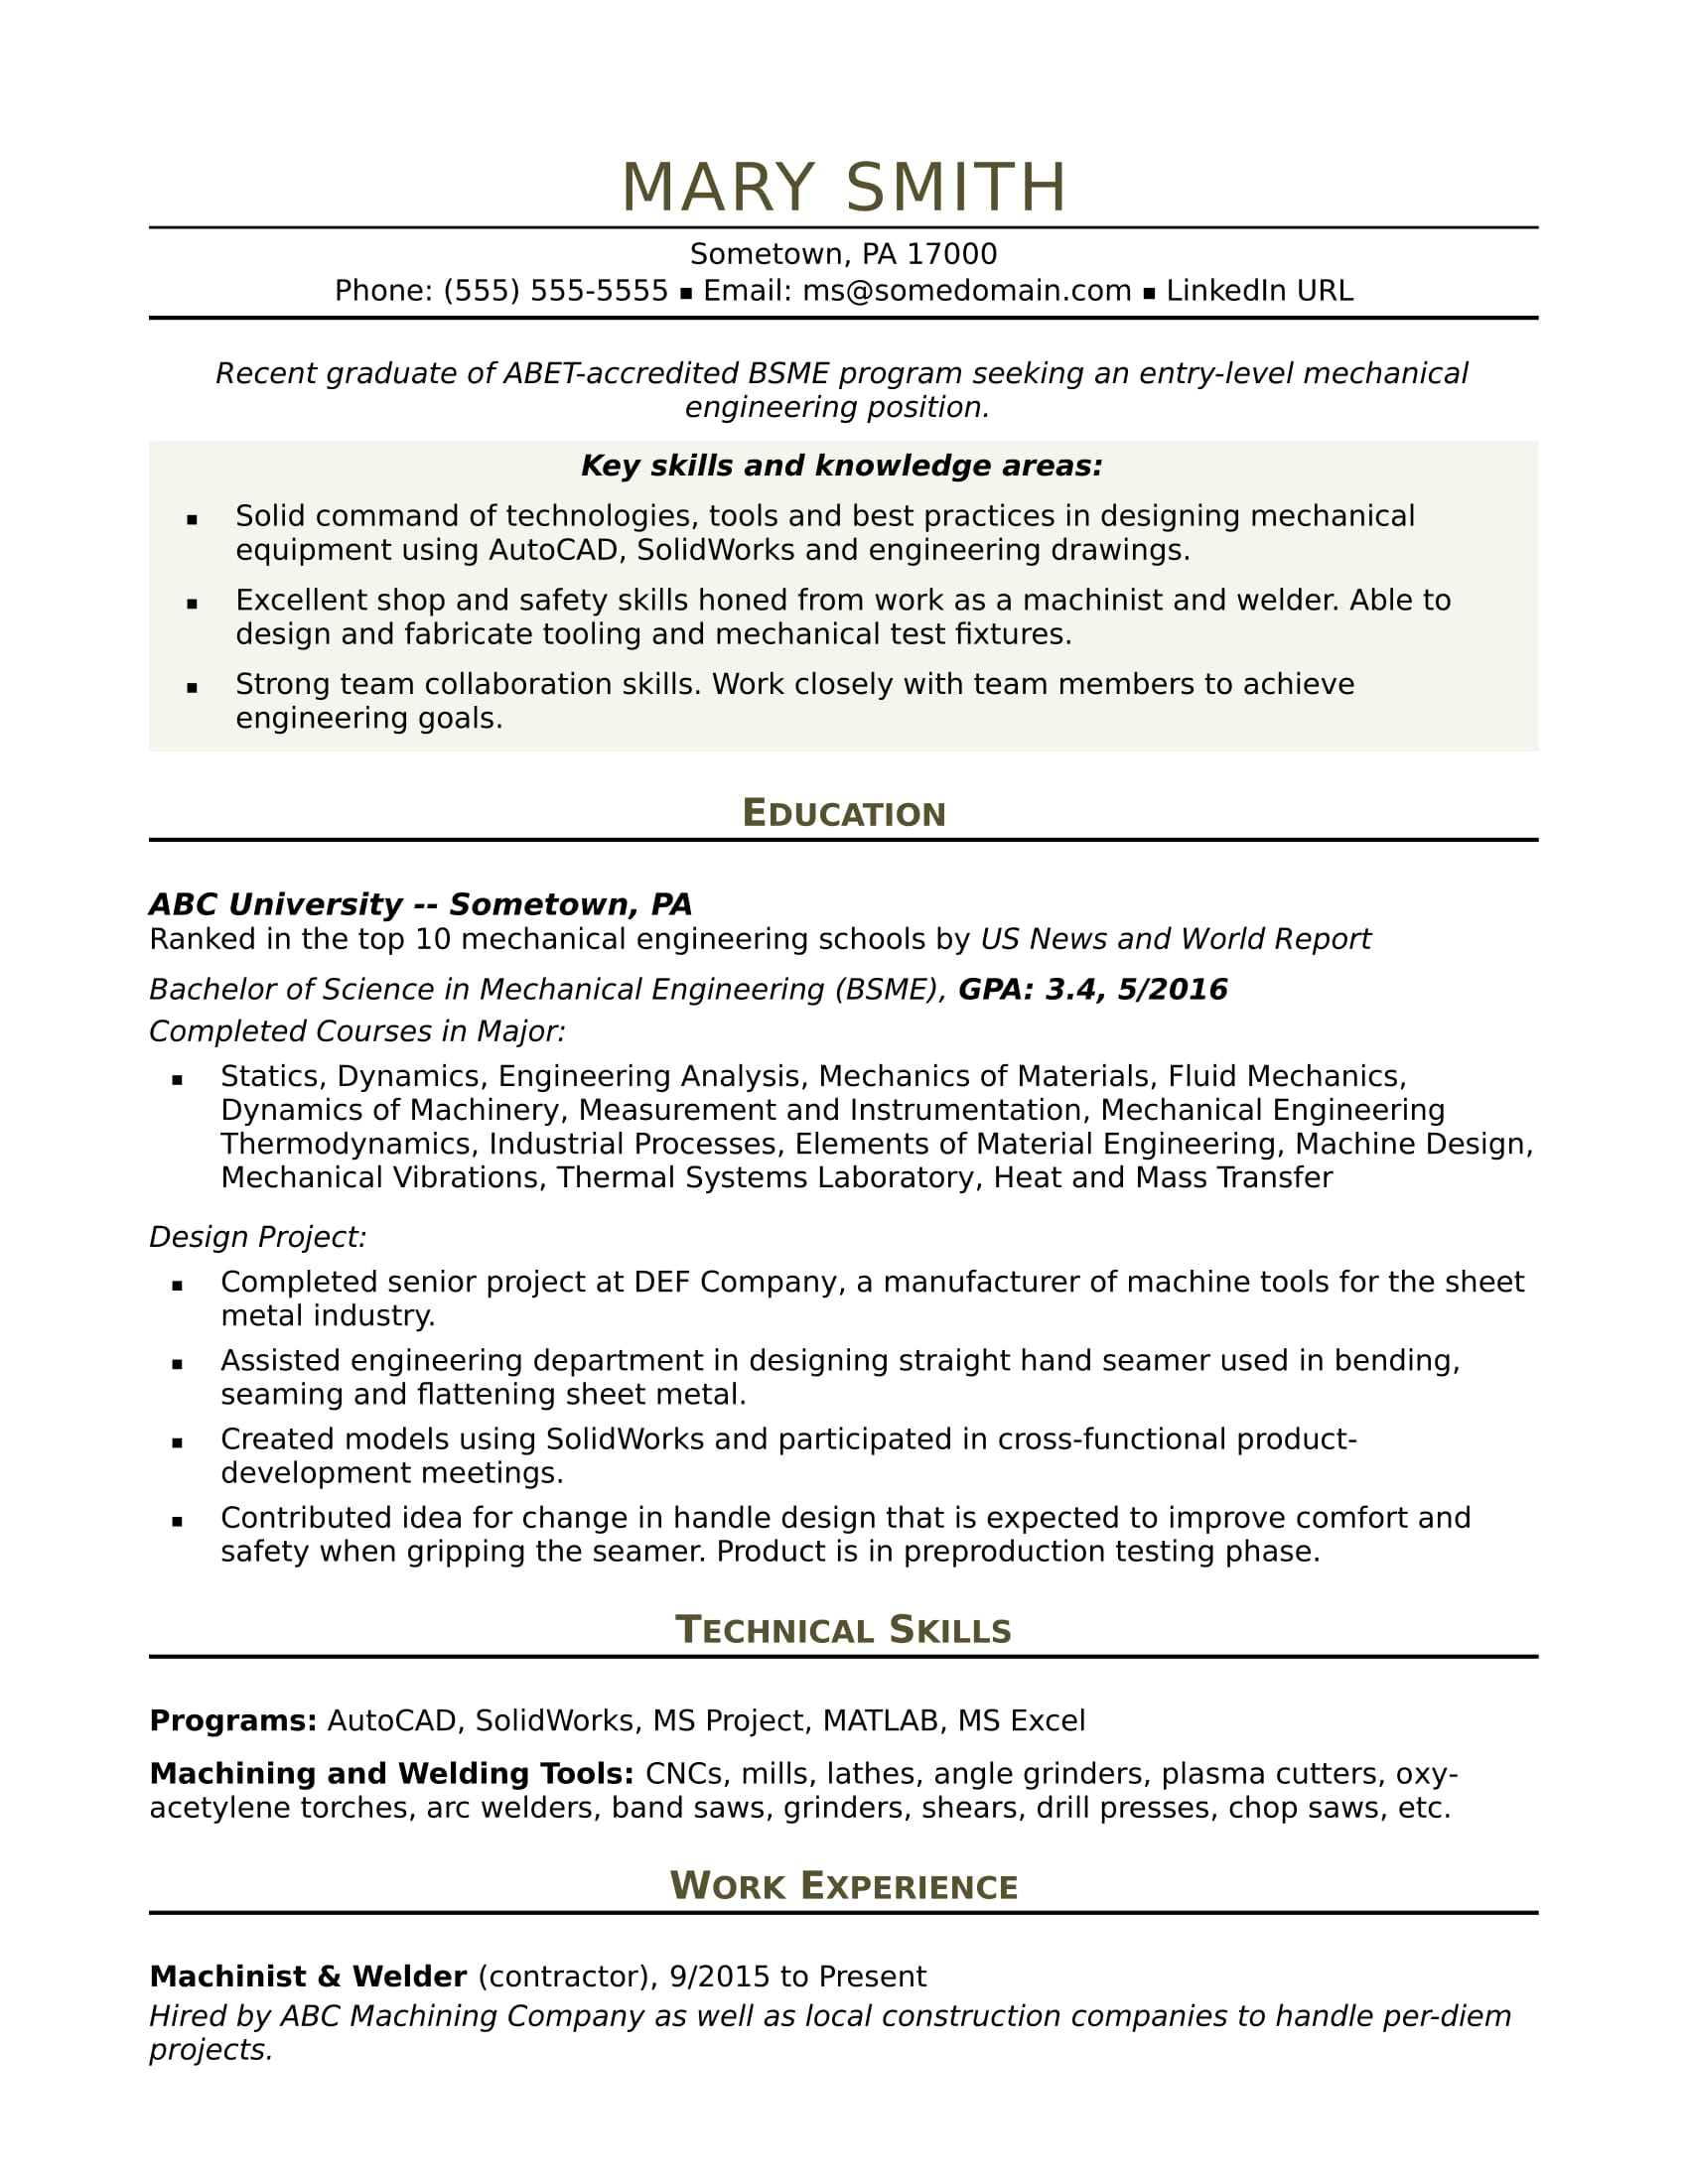 Resume Objective Examples For Mechanical Engineering Sample Resume For An Entry Level Mechanical Engineer